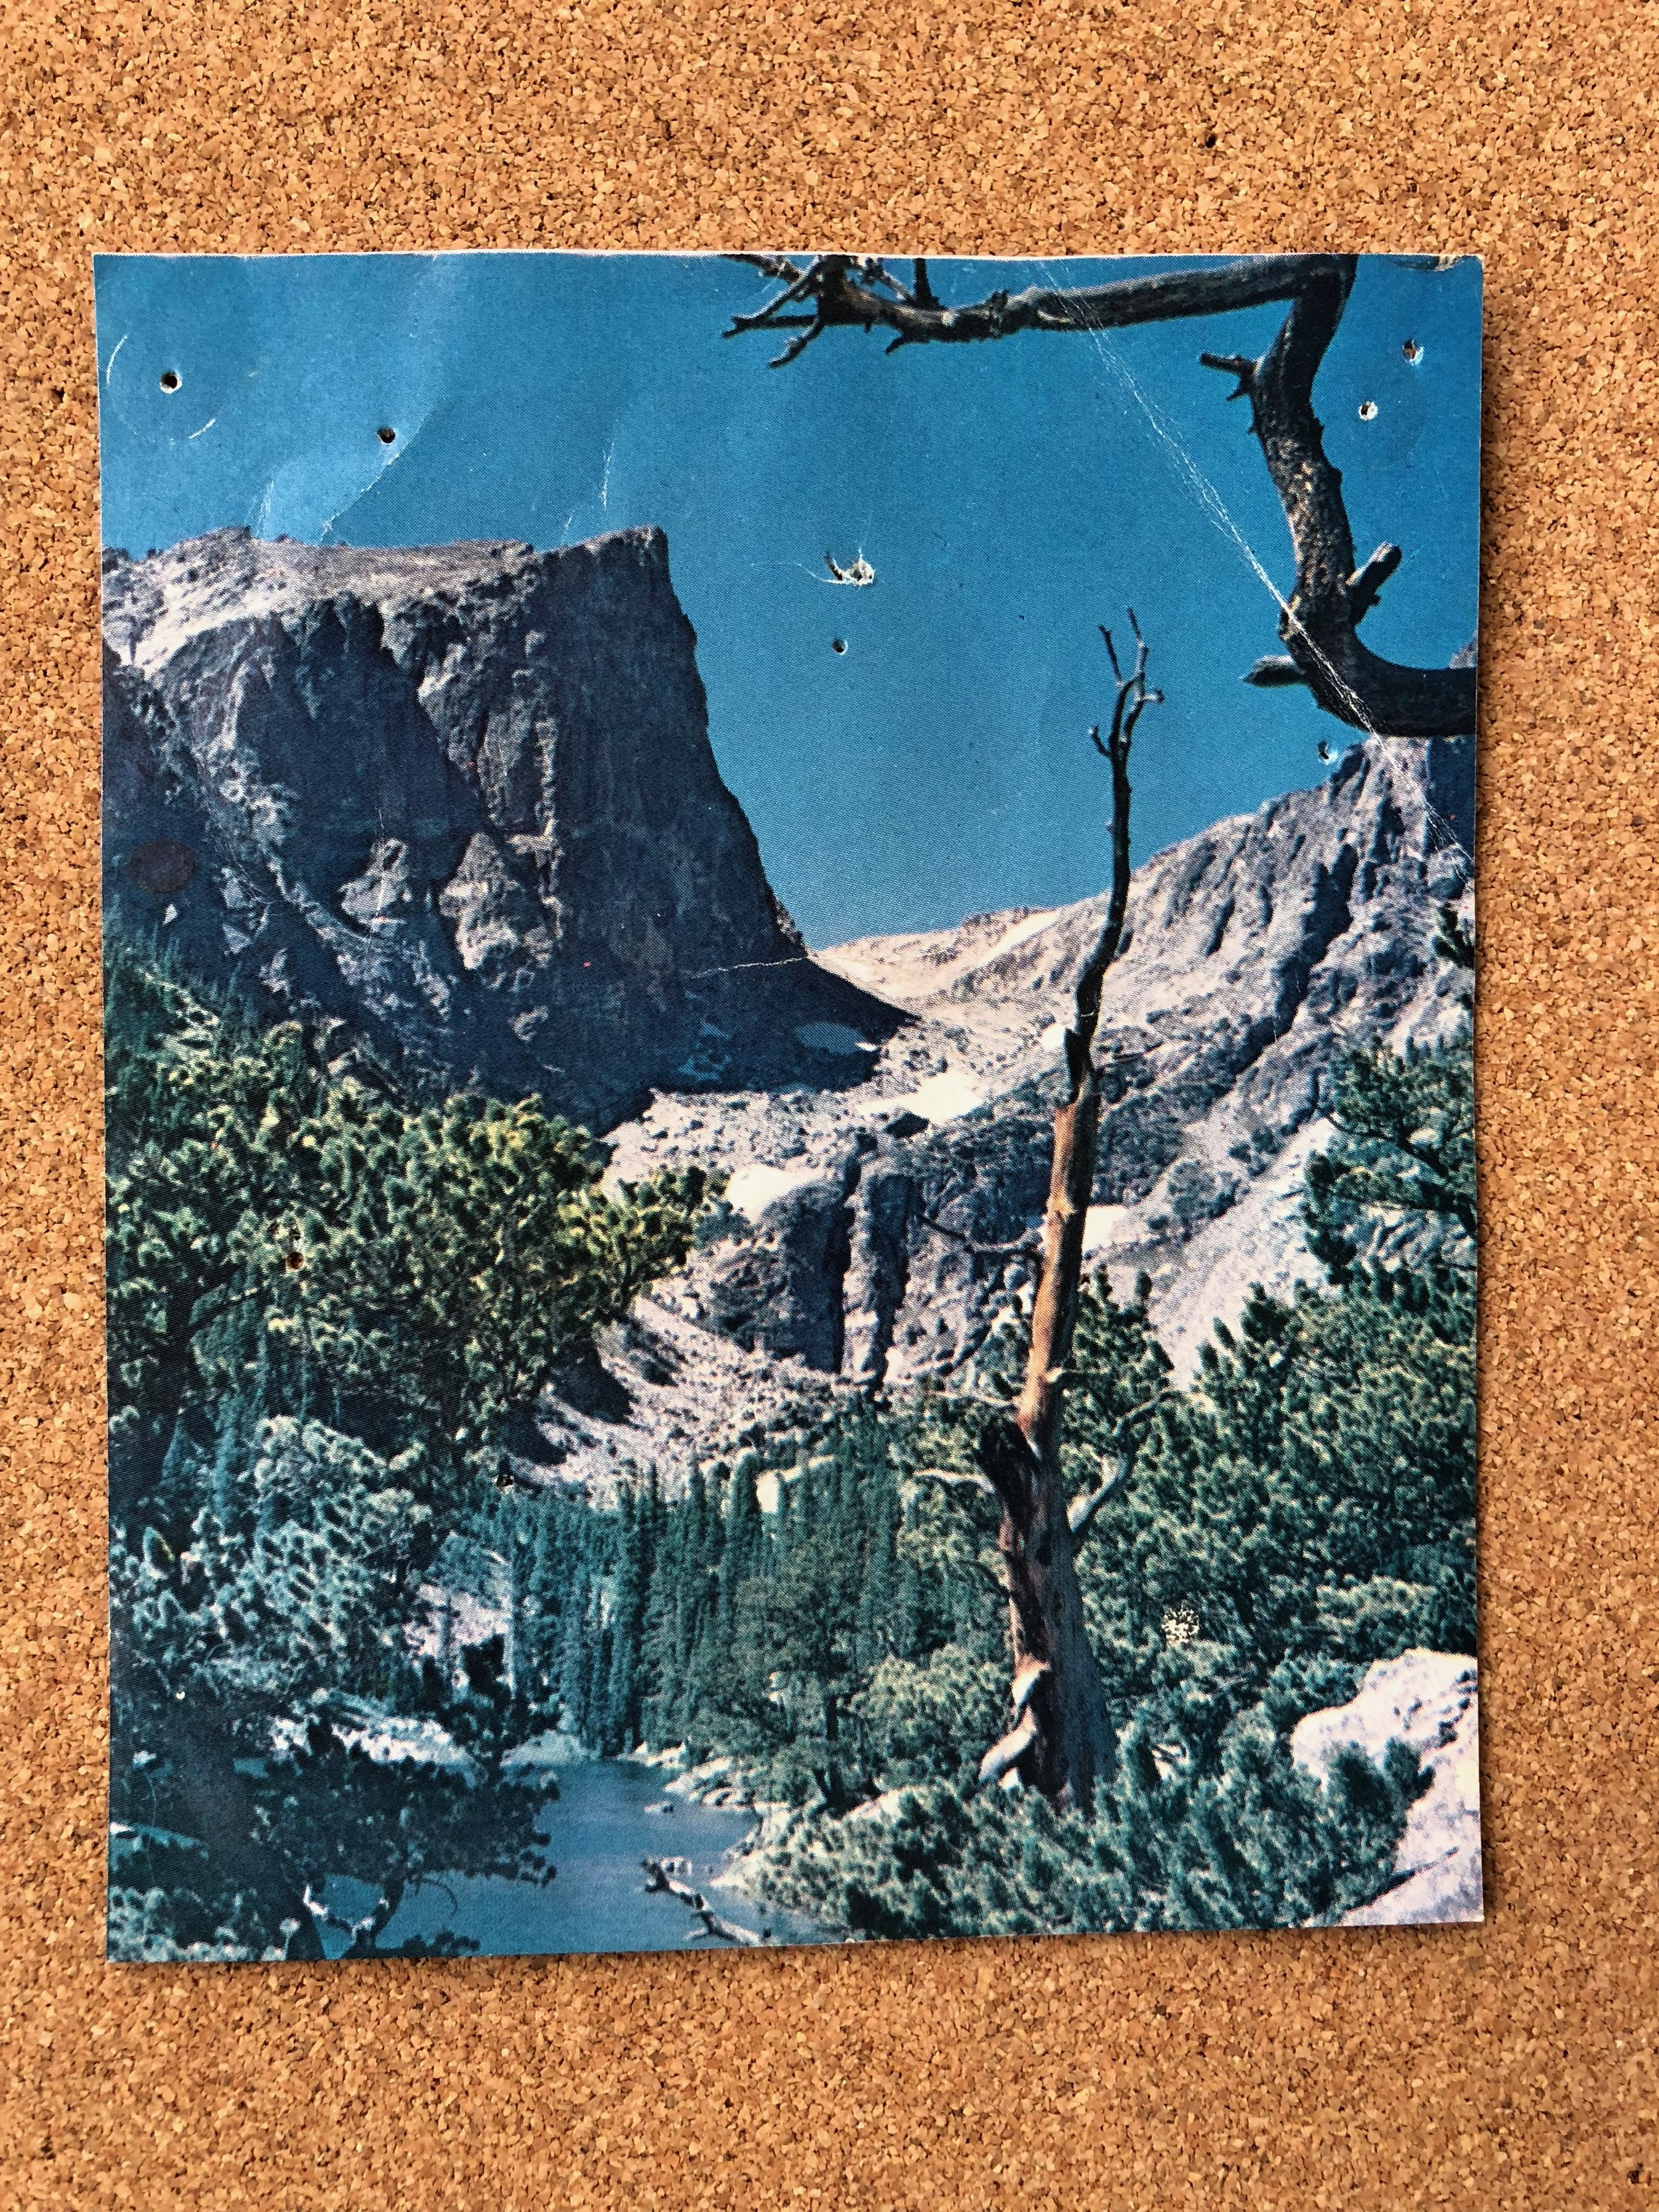 Photo of the mountains in Rocky Mountain National Park, Estes, Colorado. Cut from a trail map brochure.